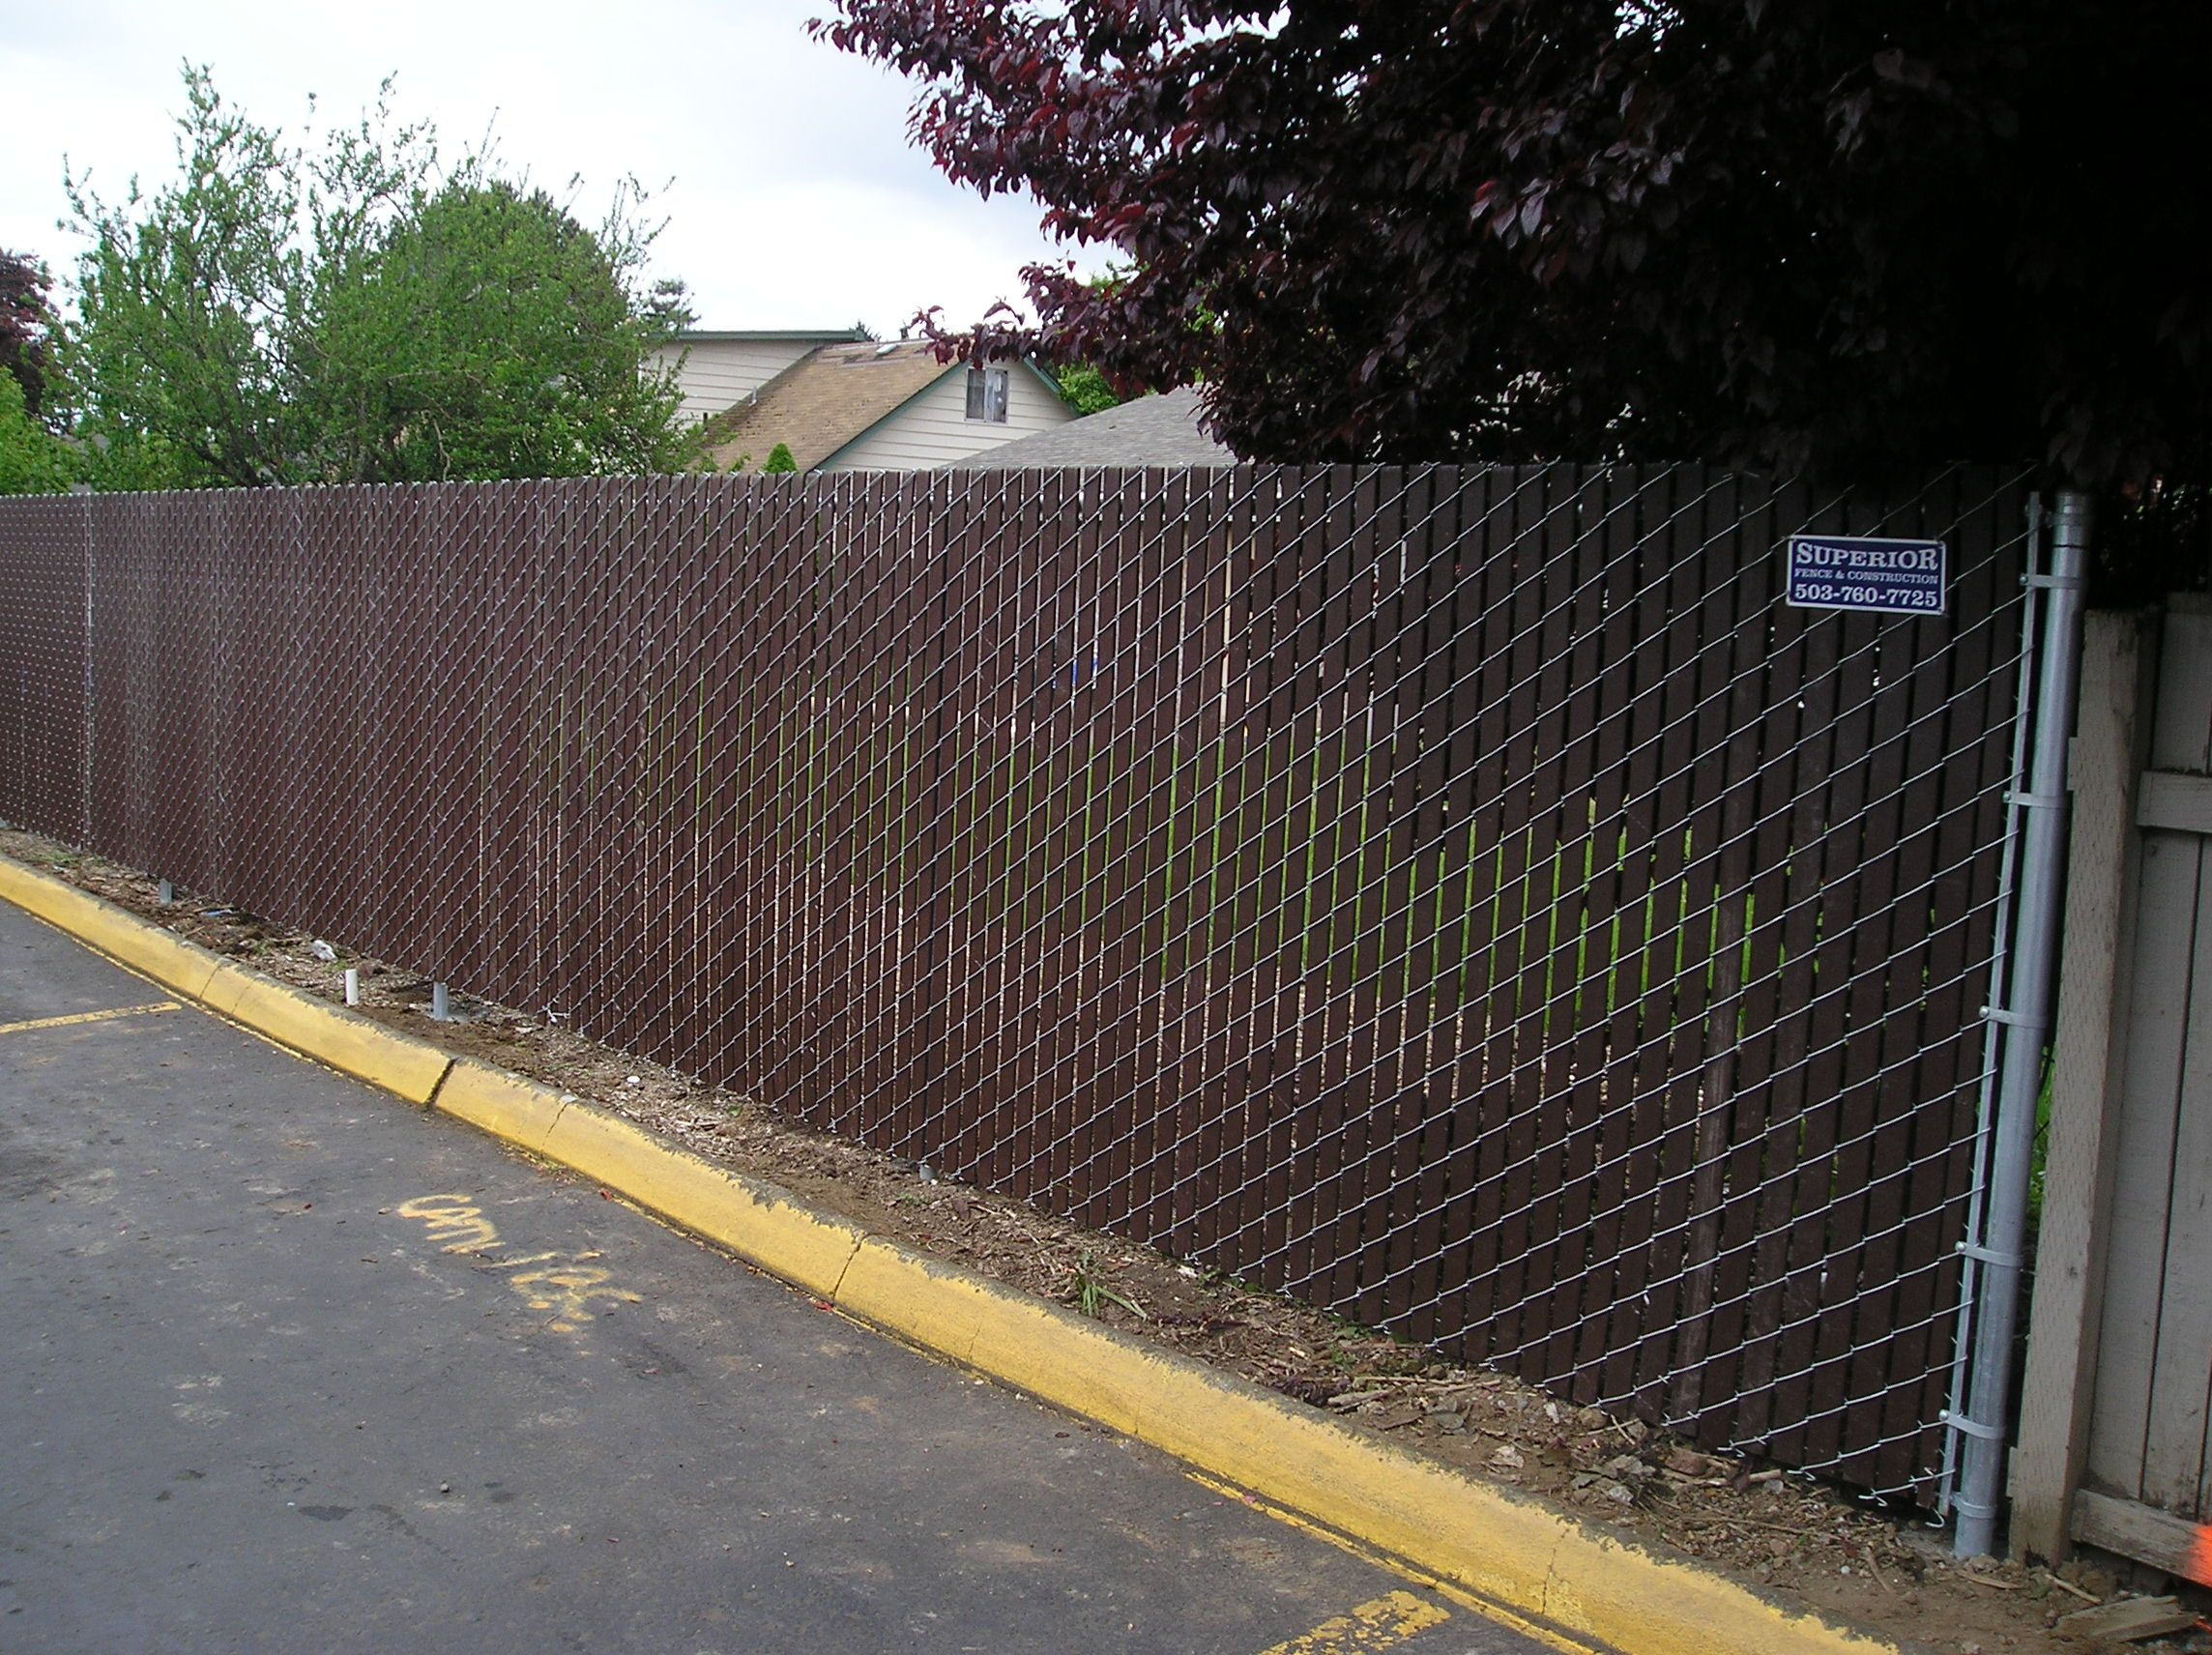 Chain Link Fence With Brown Slats For Privacy 503 760 7725 Chain Link Fence Installation Chain Link Fence Cost Black Chain Link Fence